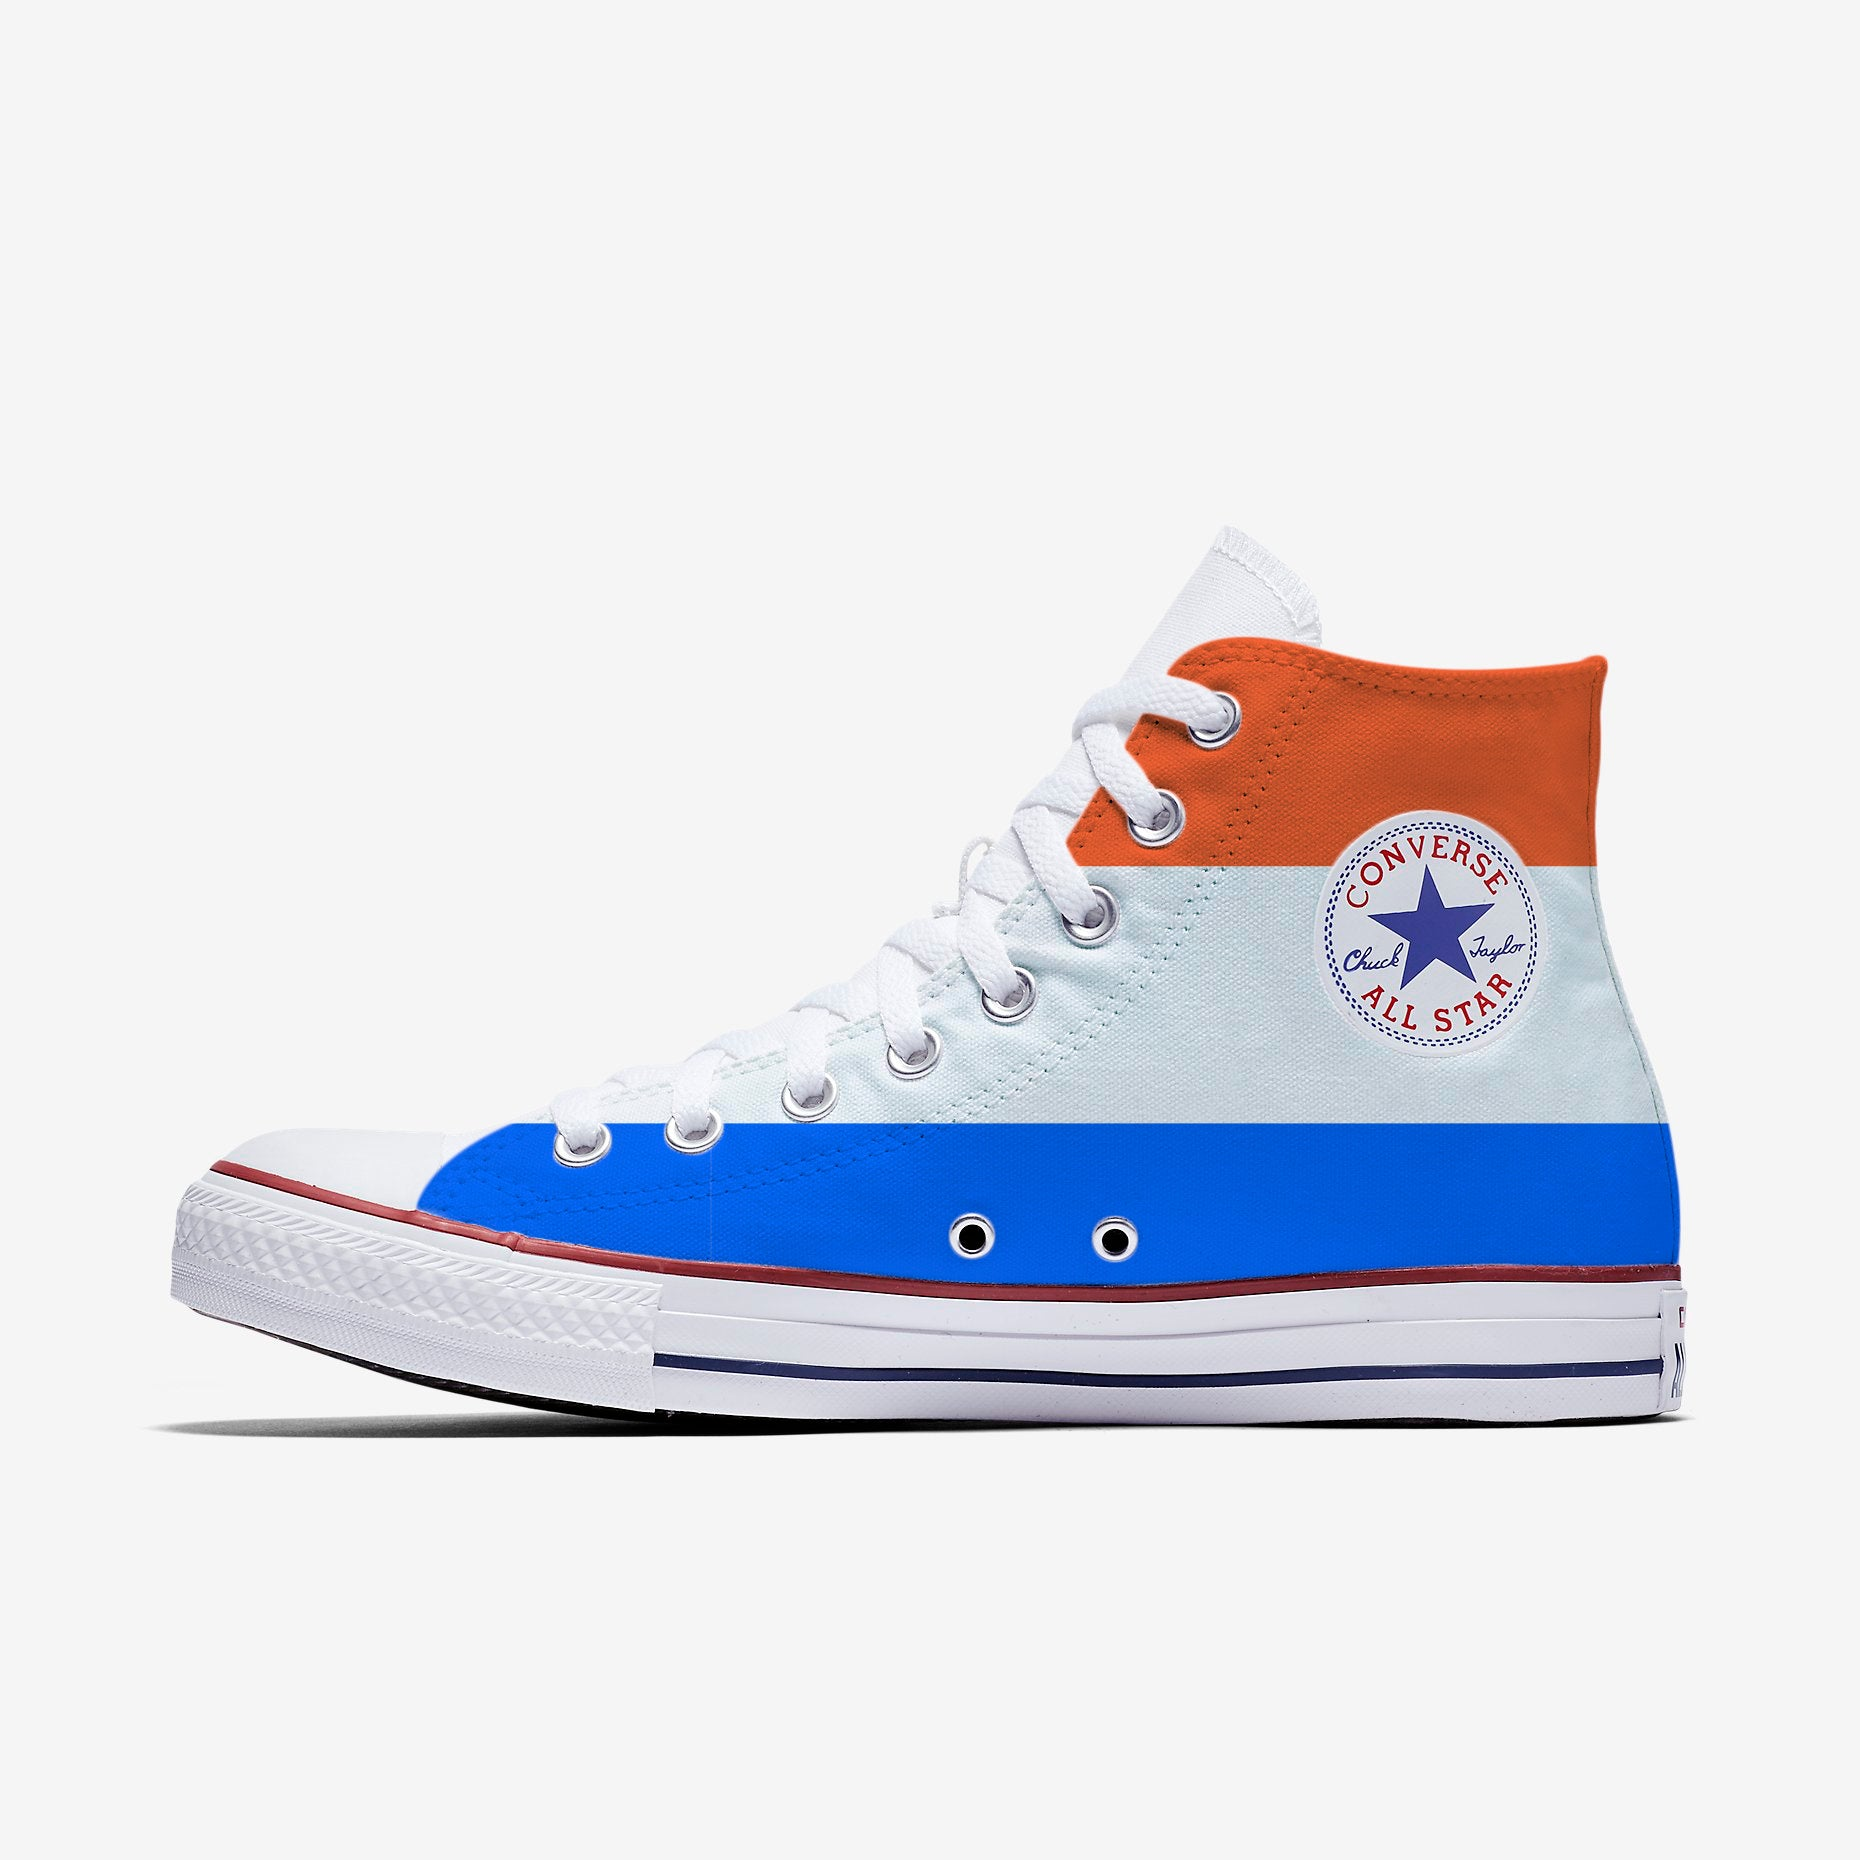 Bronx Allstar High Top